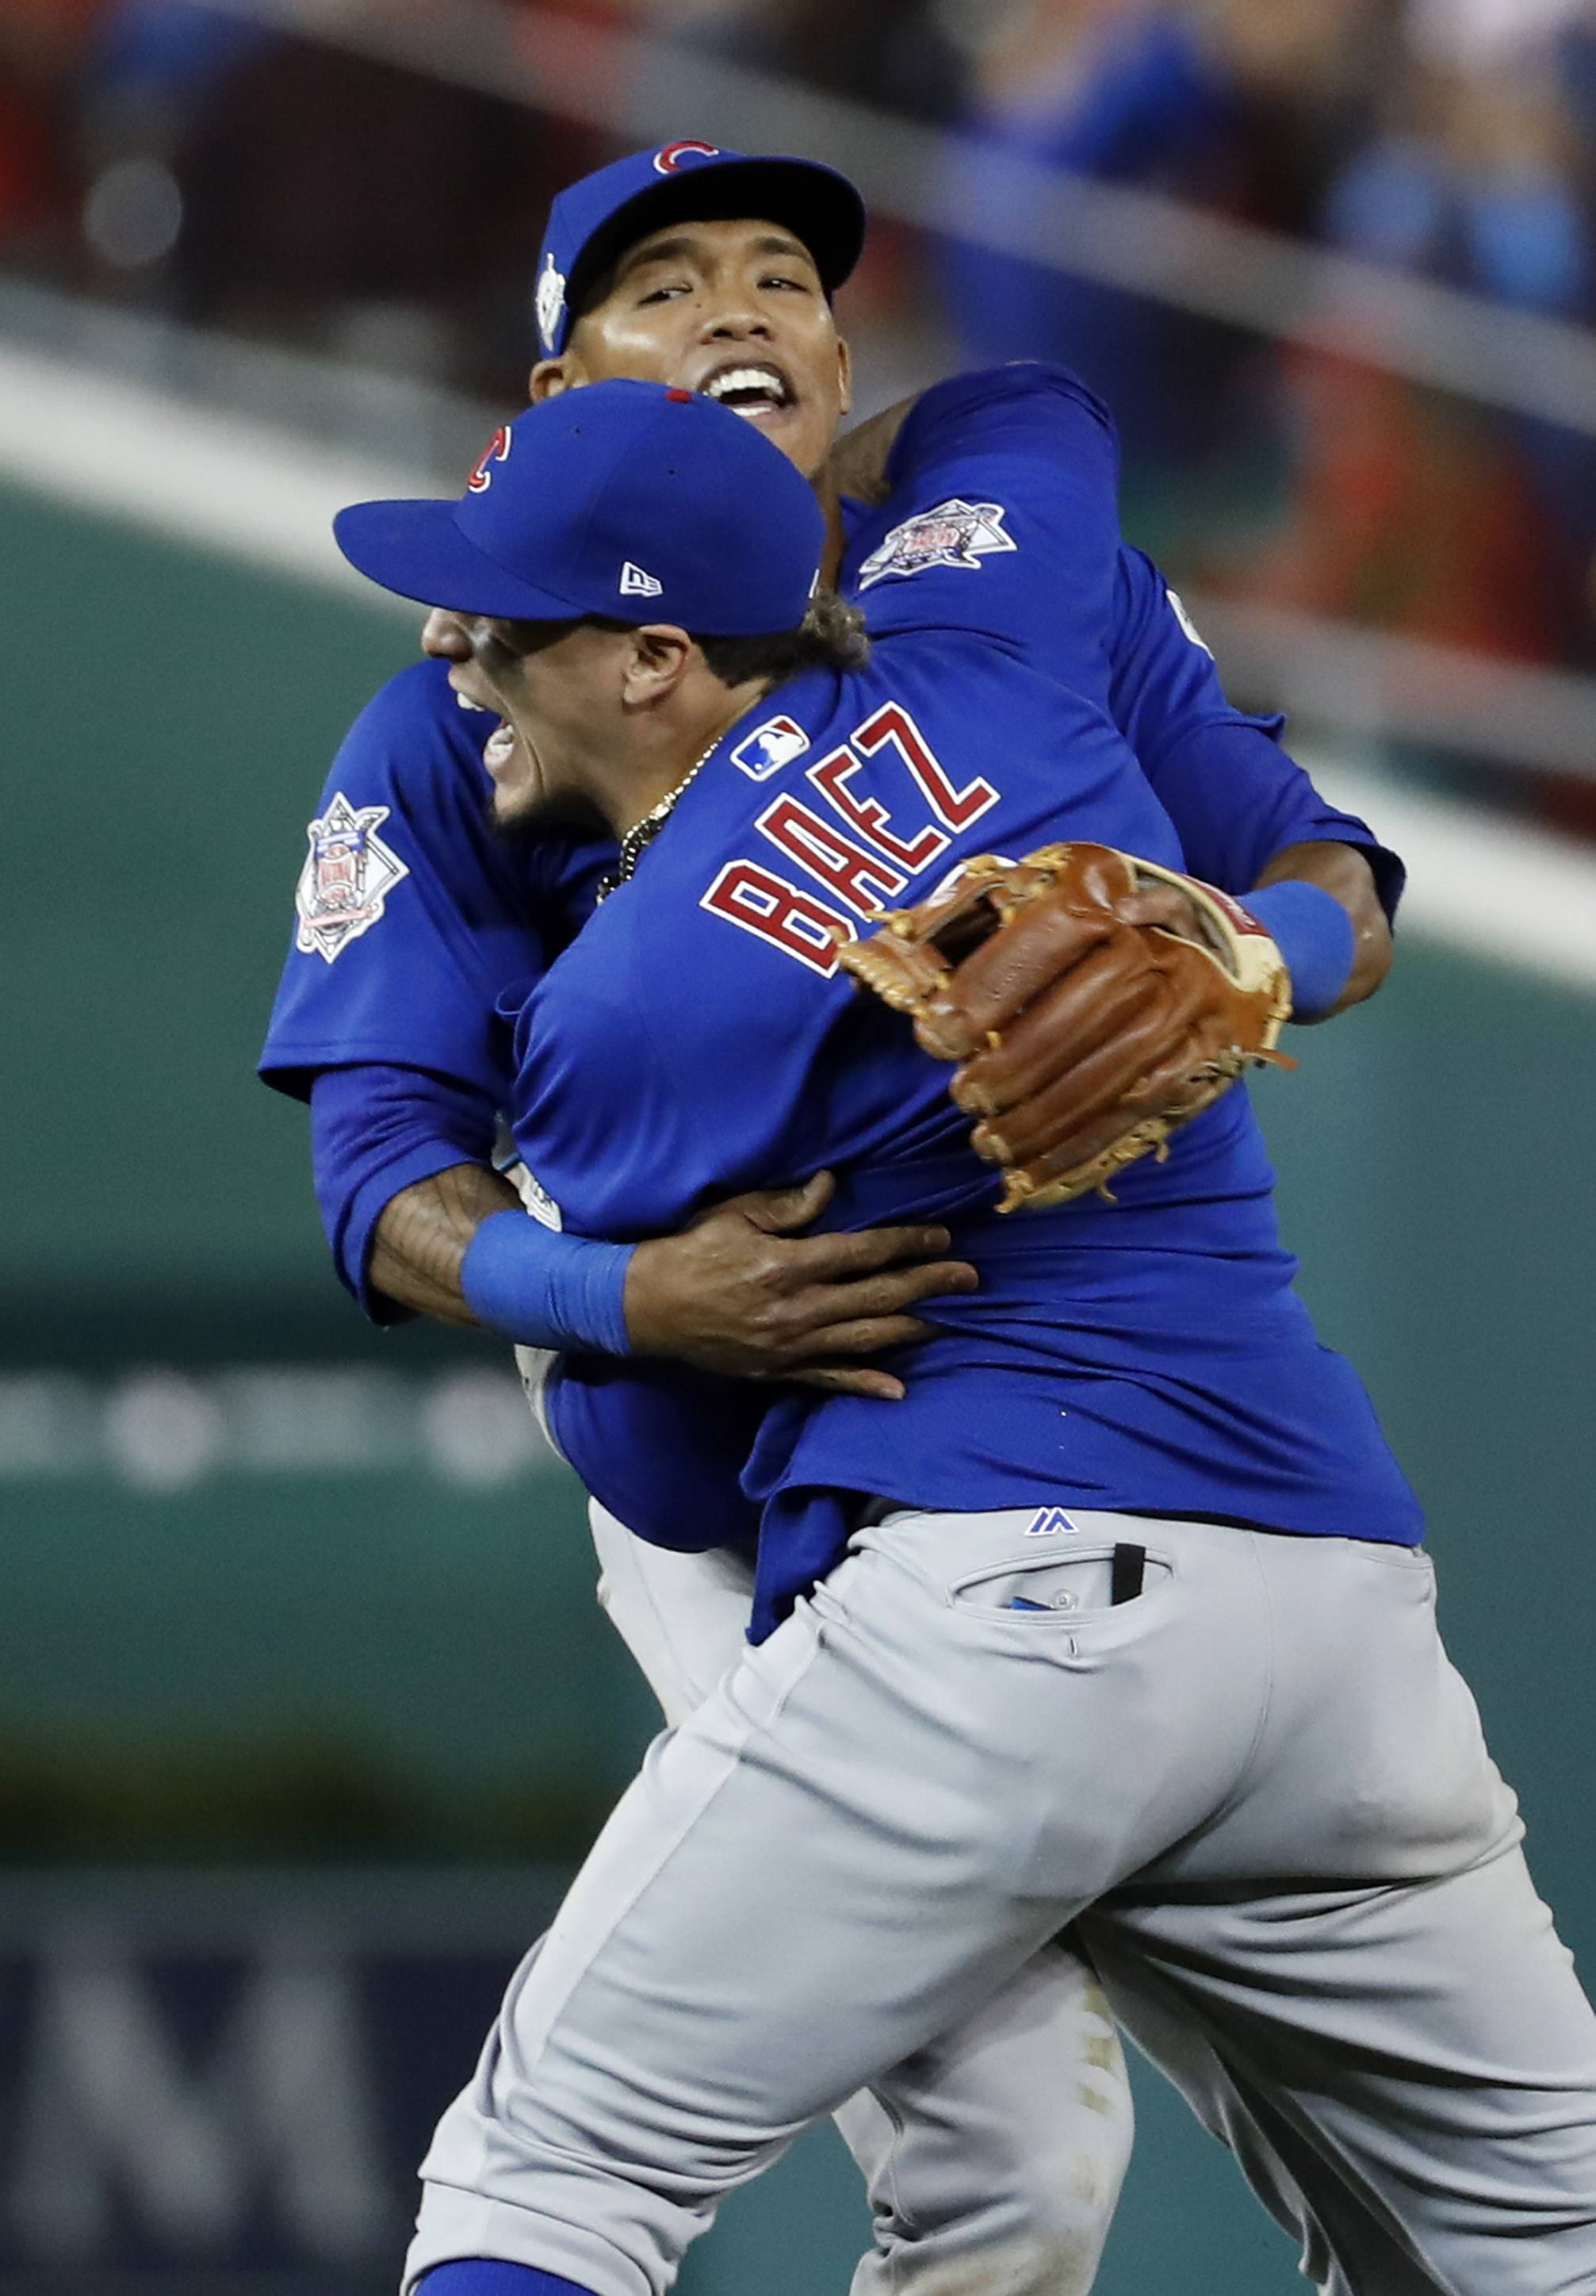 Images: Chicago Cubs over Washington Nationals, 9-8 in NLDS Game 5